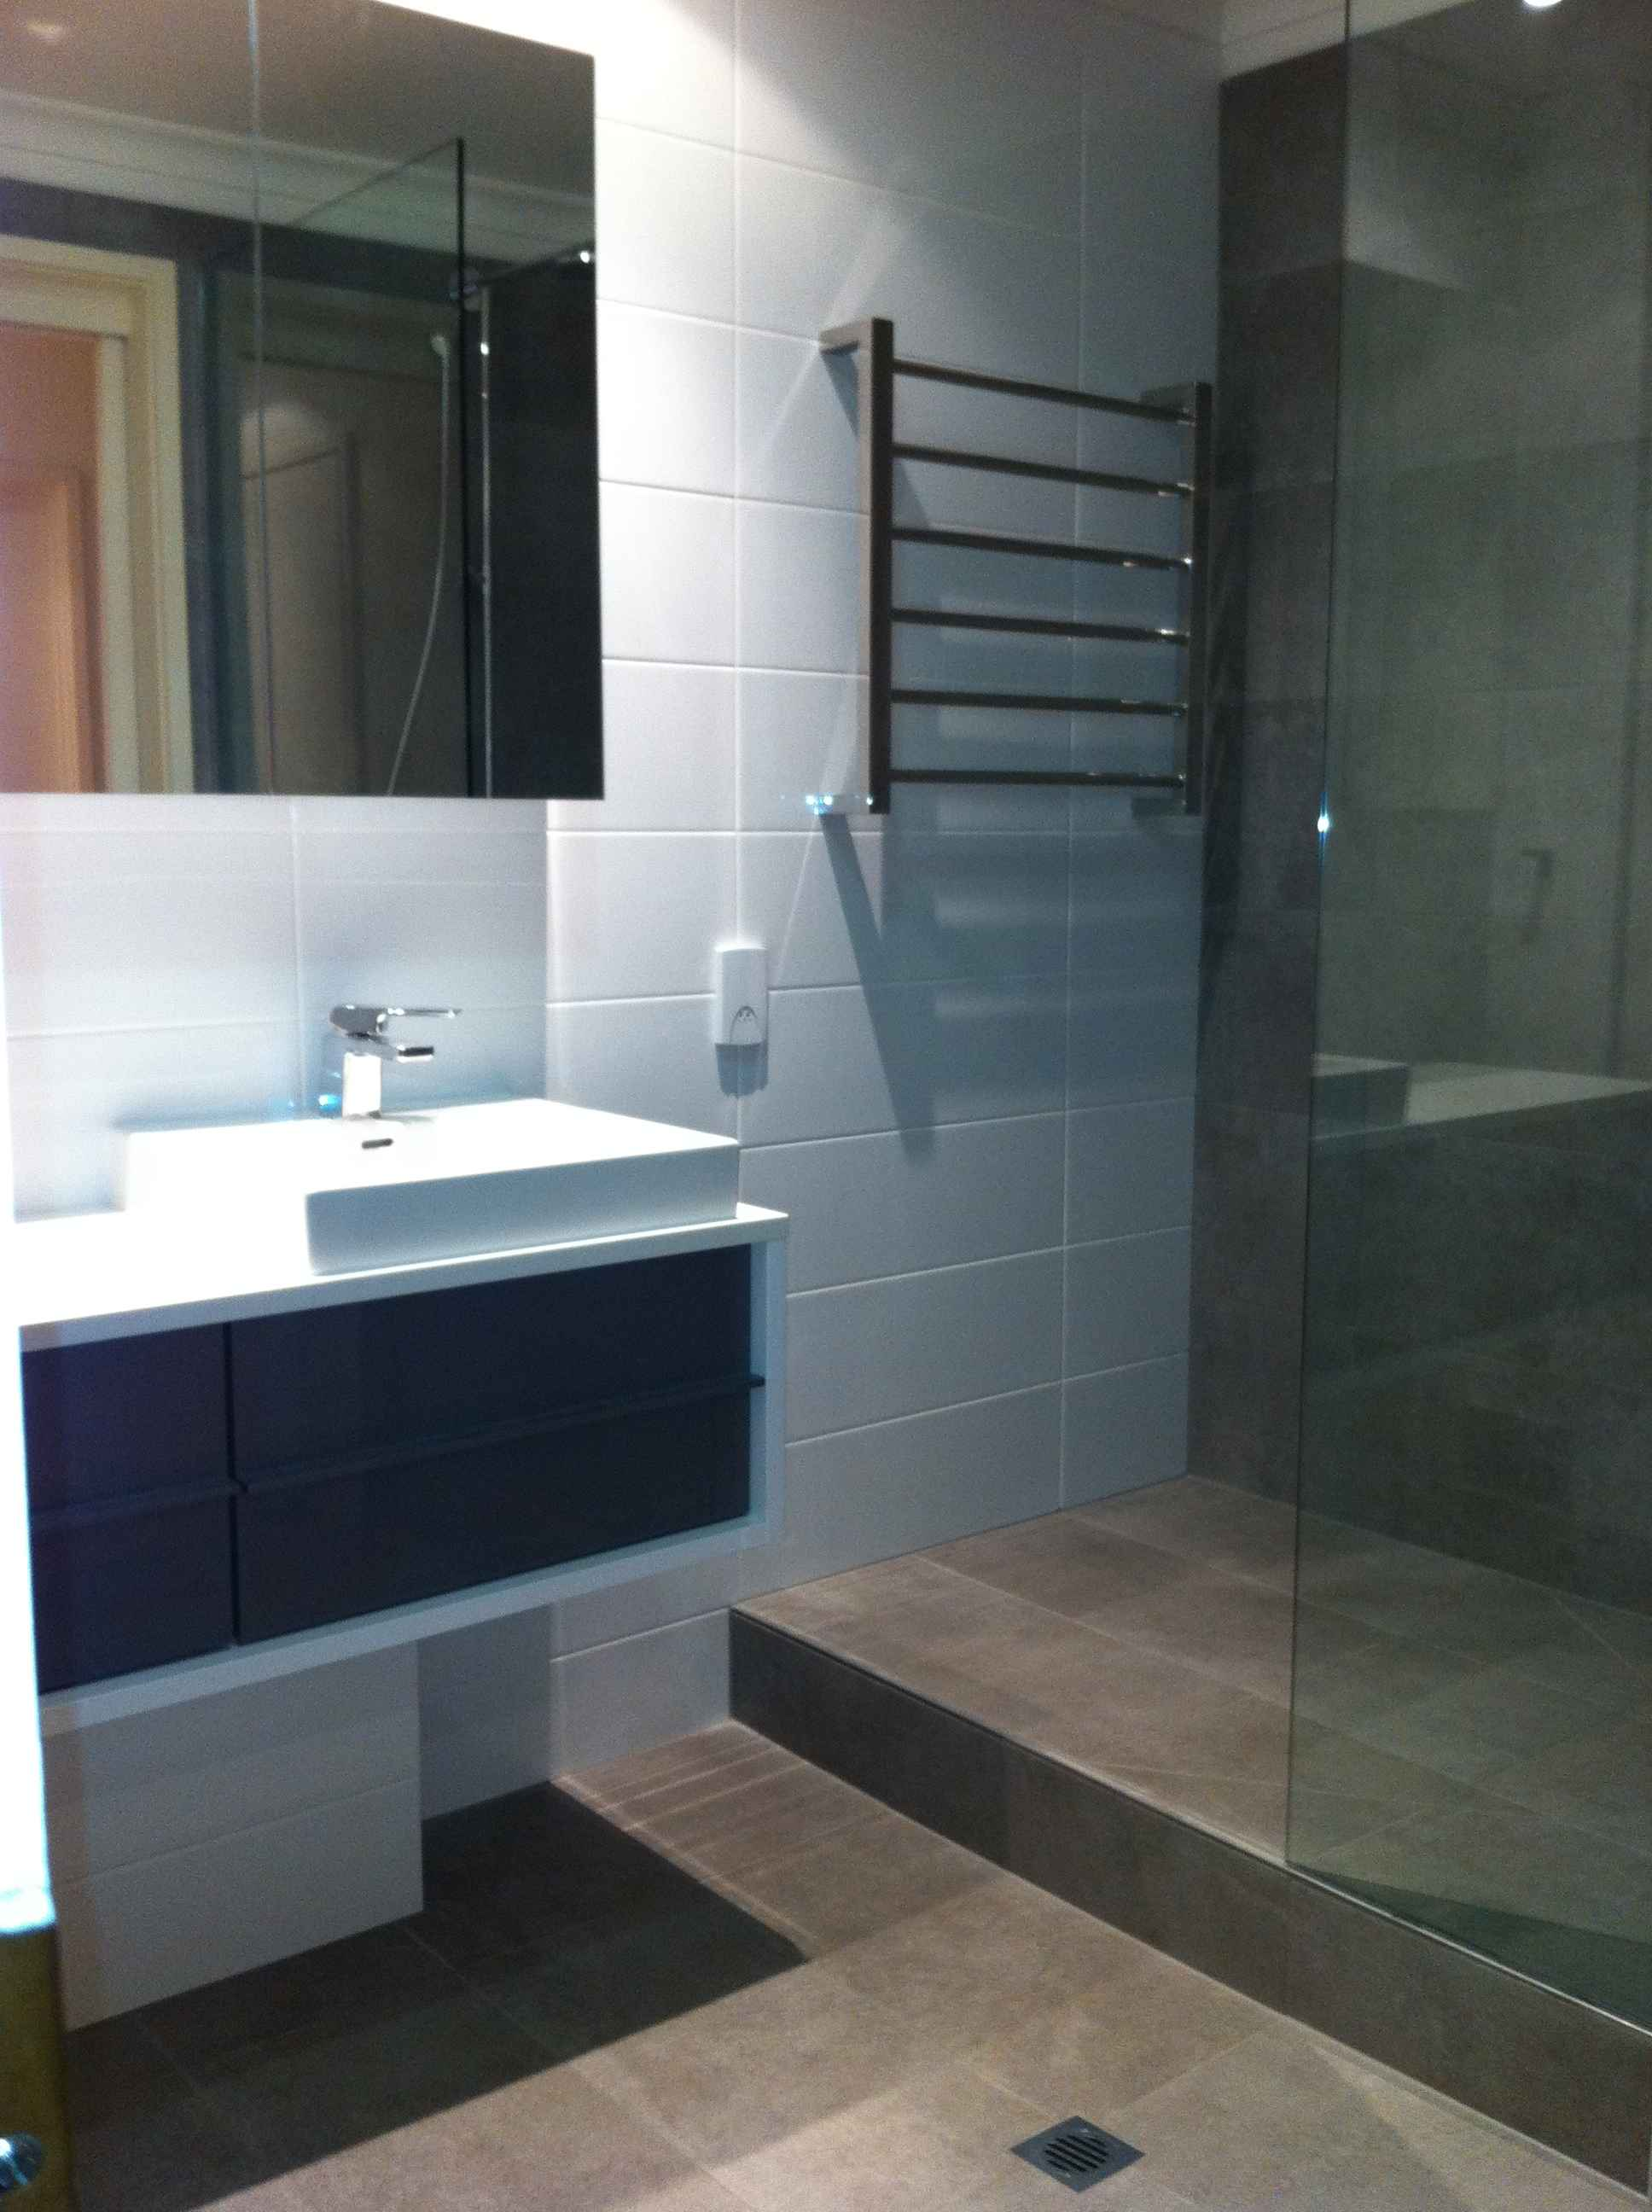 Beautiful bathrooms renovations and kitchens renovations melbourne Small bathroom design melbourne